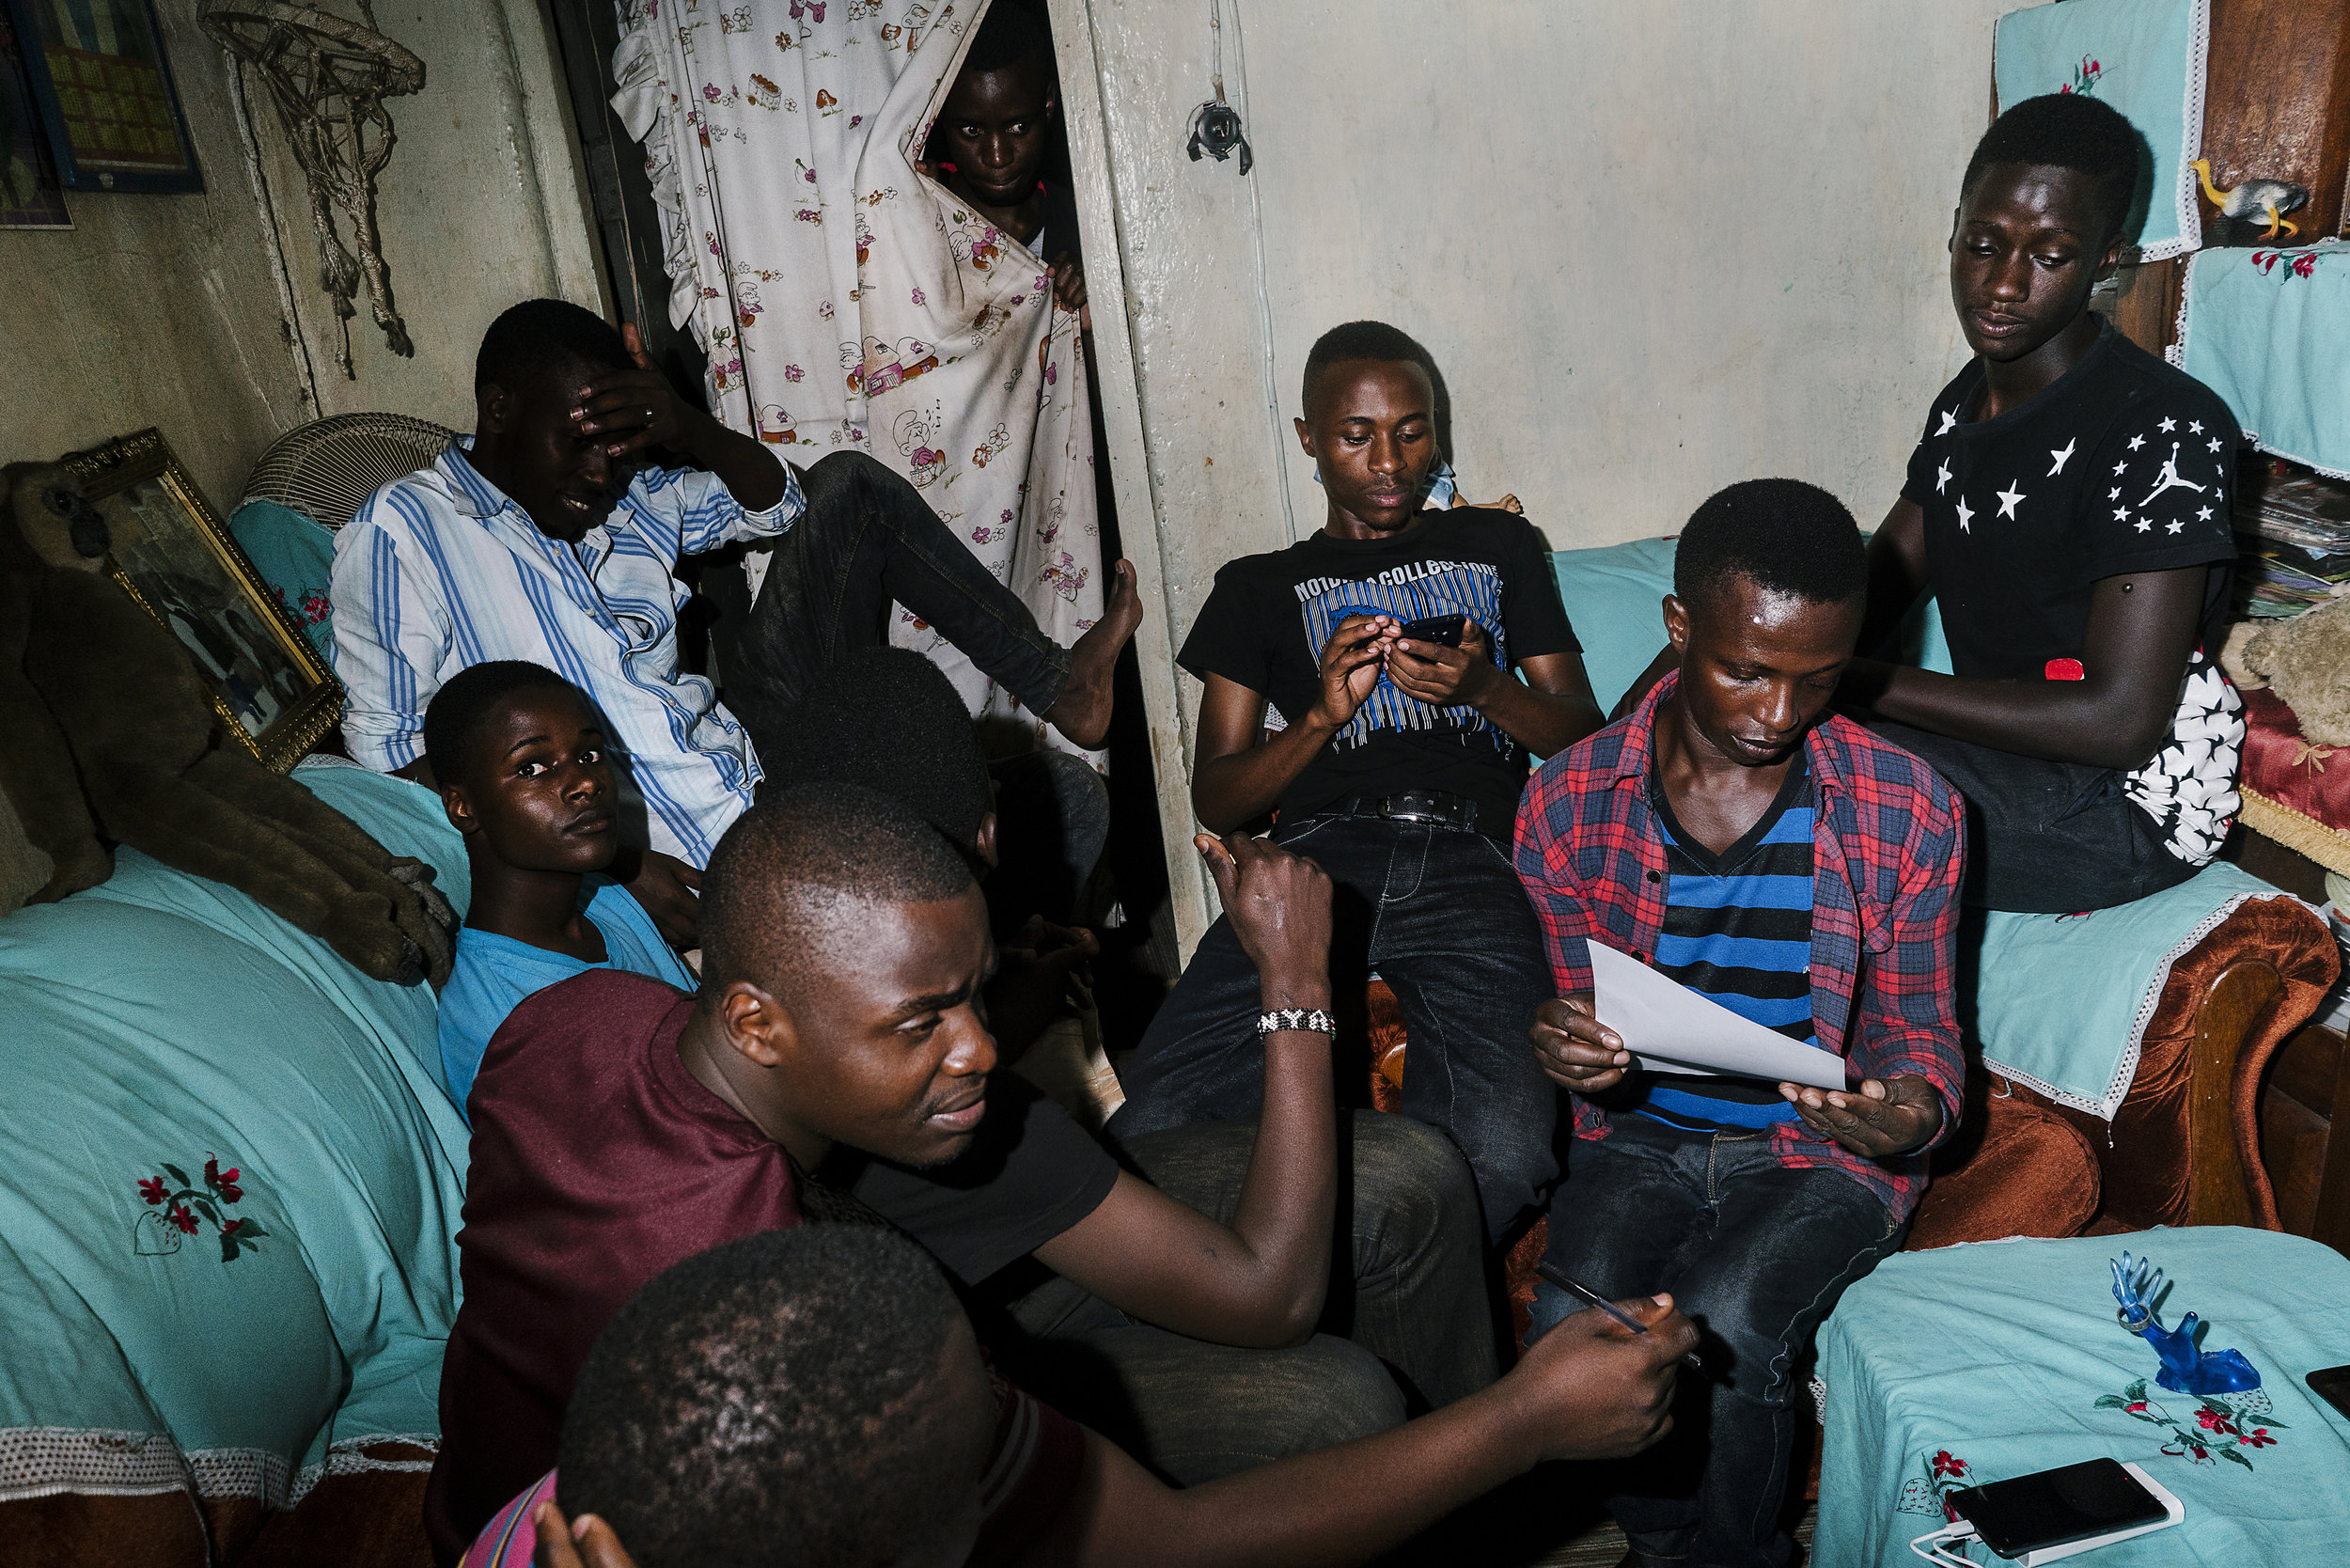 Young LGBTQ people gather in the living room of the Children of the Sun safe house. At the time this photo was taken, there were 8 people sleeping in the two room apartment, though the number fluctuates daily from six to 12. The organization had been paying the rent with earnings from a market stall, but on the day this photo was taken, the market was shut down and so the tenants resorted to sex work to pay the rent, according to one of the group's founders. Many were chased away from their families because of their LGBTQ identity, though others stay at the house for the company of others like them.